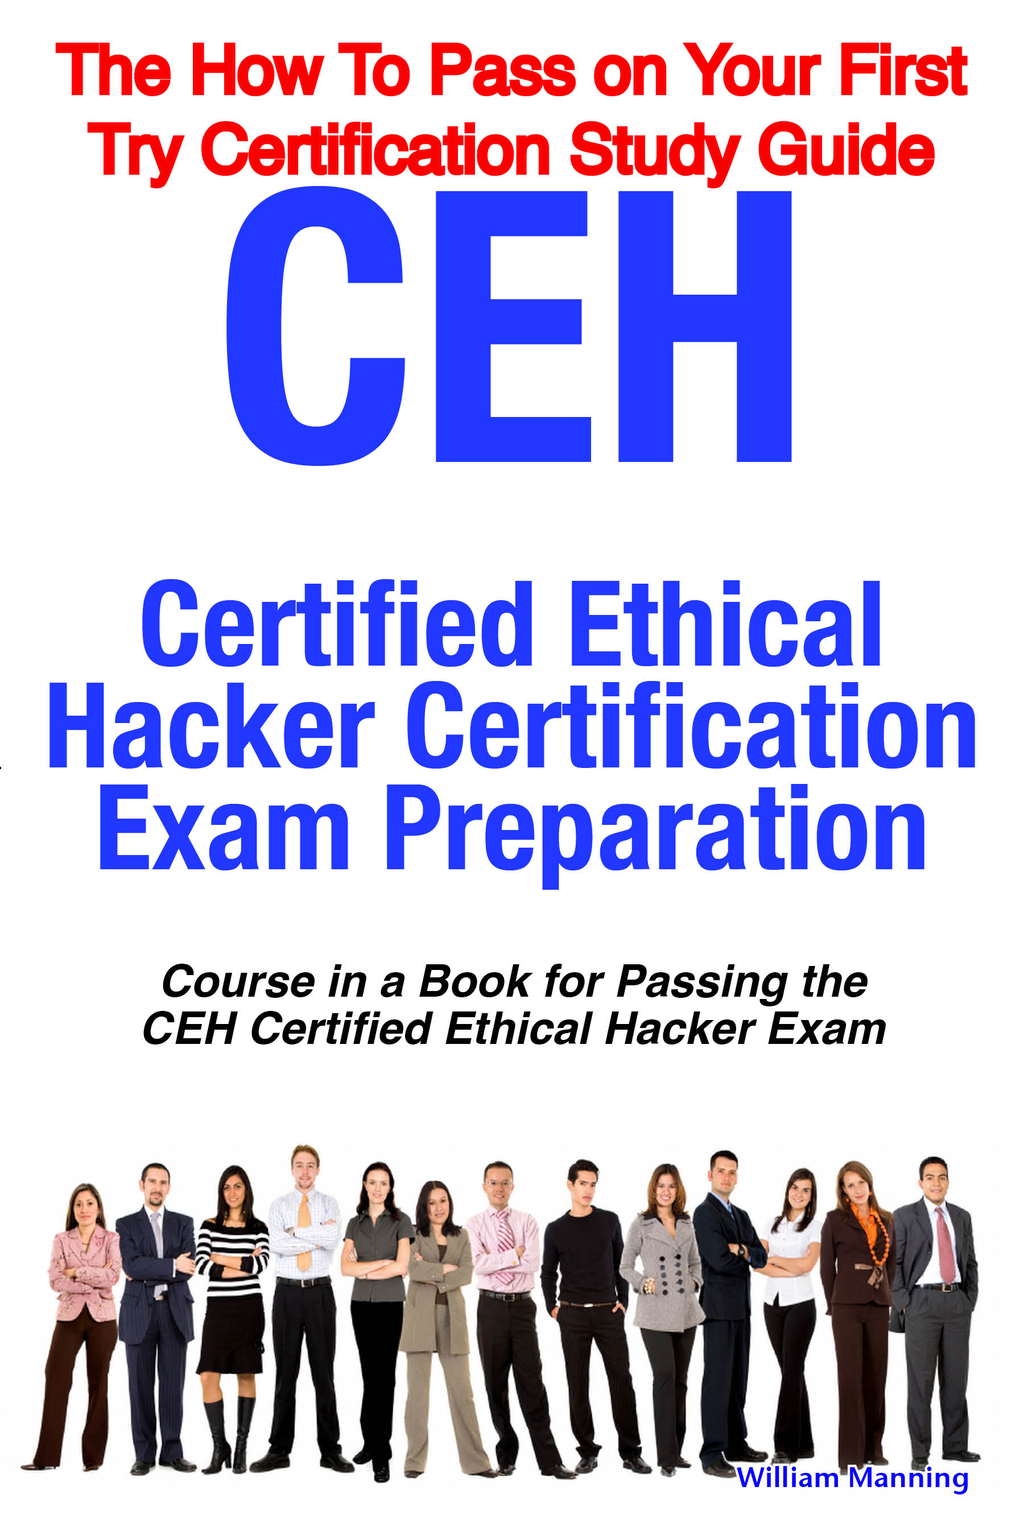 CEH Certified Ethical Hacker Certification Exam Preparation Course in a Book for Passing the CEH Certified Ethical Hacker Exam - The How To Pass on Your First Try Certification Study Guide By: William Manning